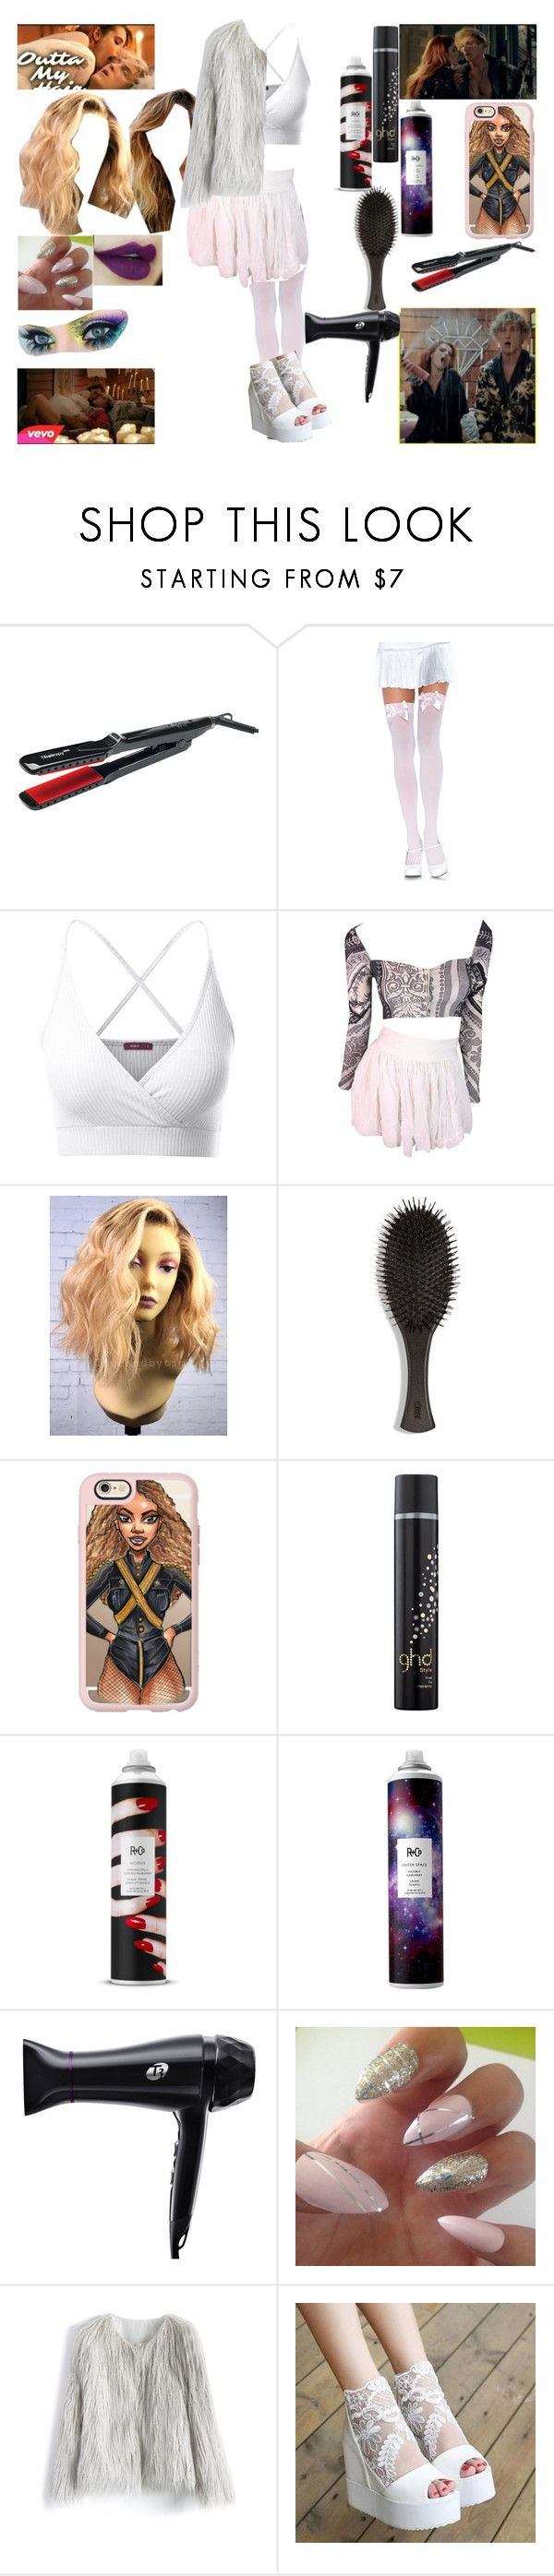 """""""~I just can't get you outta my hair can't get you outta my hair And I know it ain't fair Tryna blow dry it and brush it You just wanna touch it I just can't get you outta my hair~"""" by scarlett-ghost ❤ liked on Polyvore featuring Thairapy365, Leg Avenue, Doublju, Dolce&Gabbana, Oribe, Casetify, GHD, R+Co, T3 and Chicwish"""